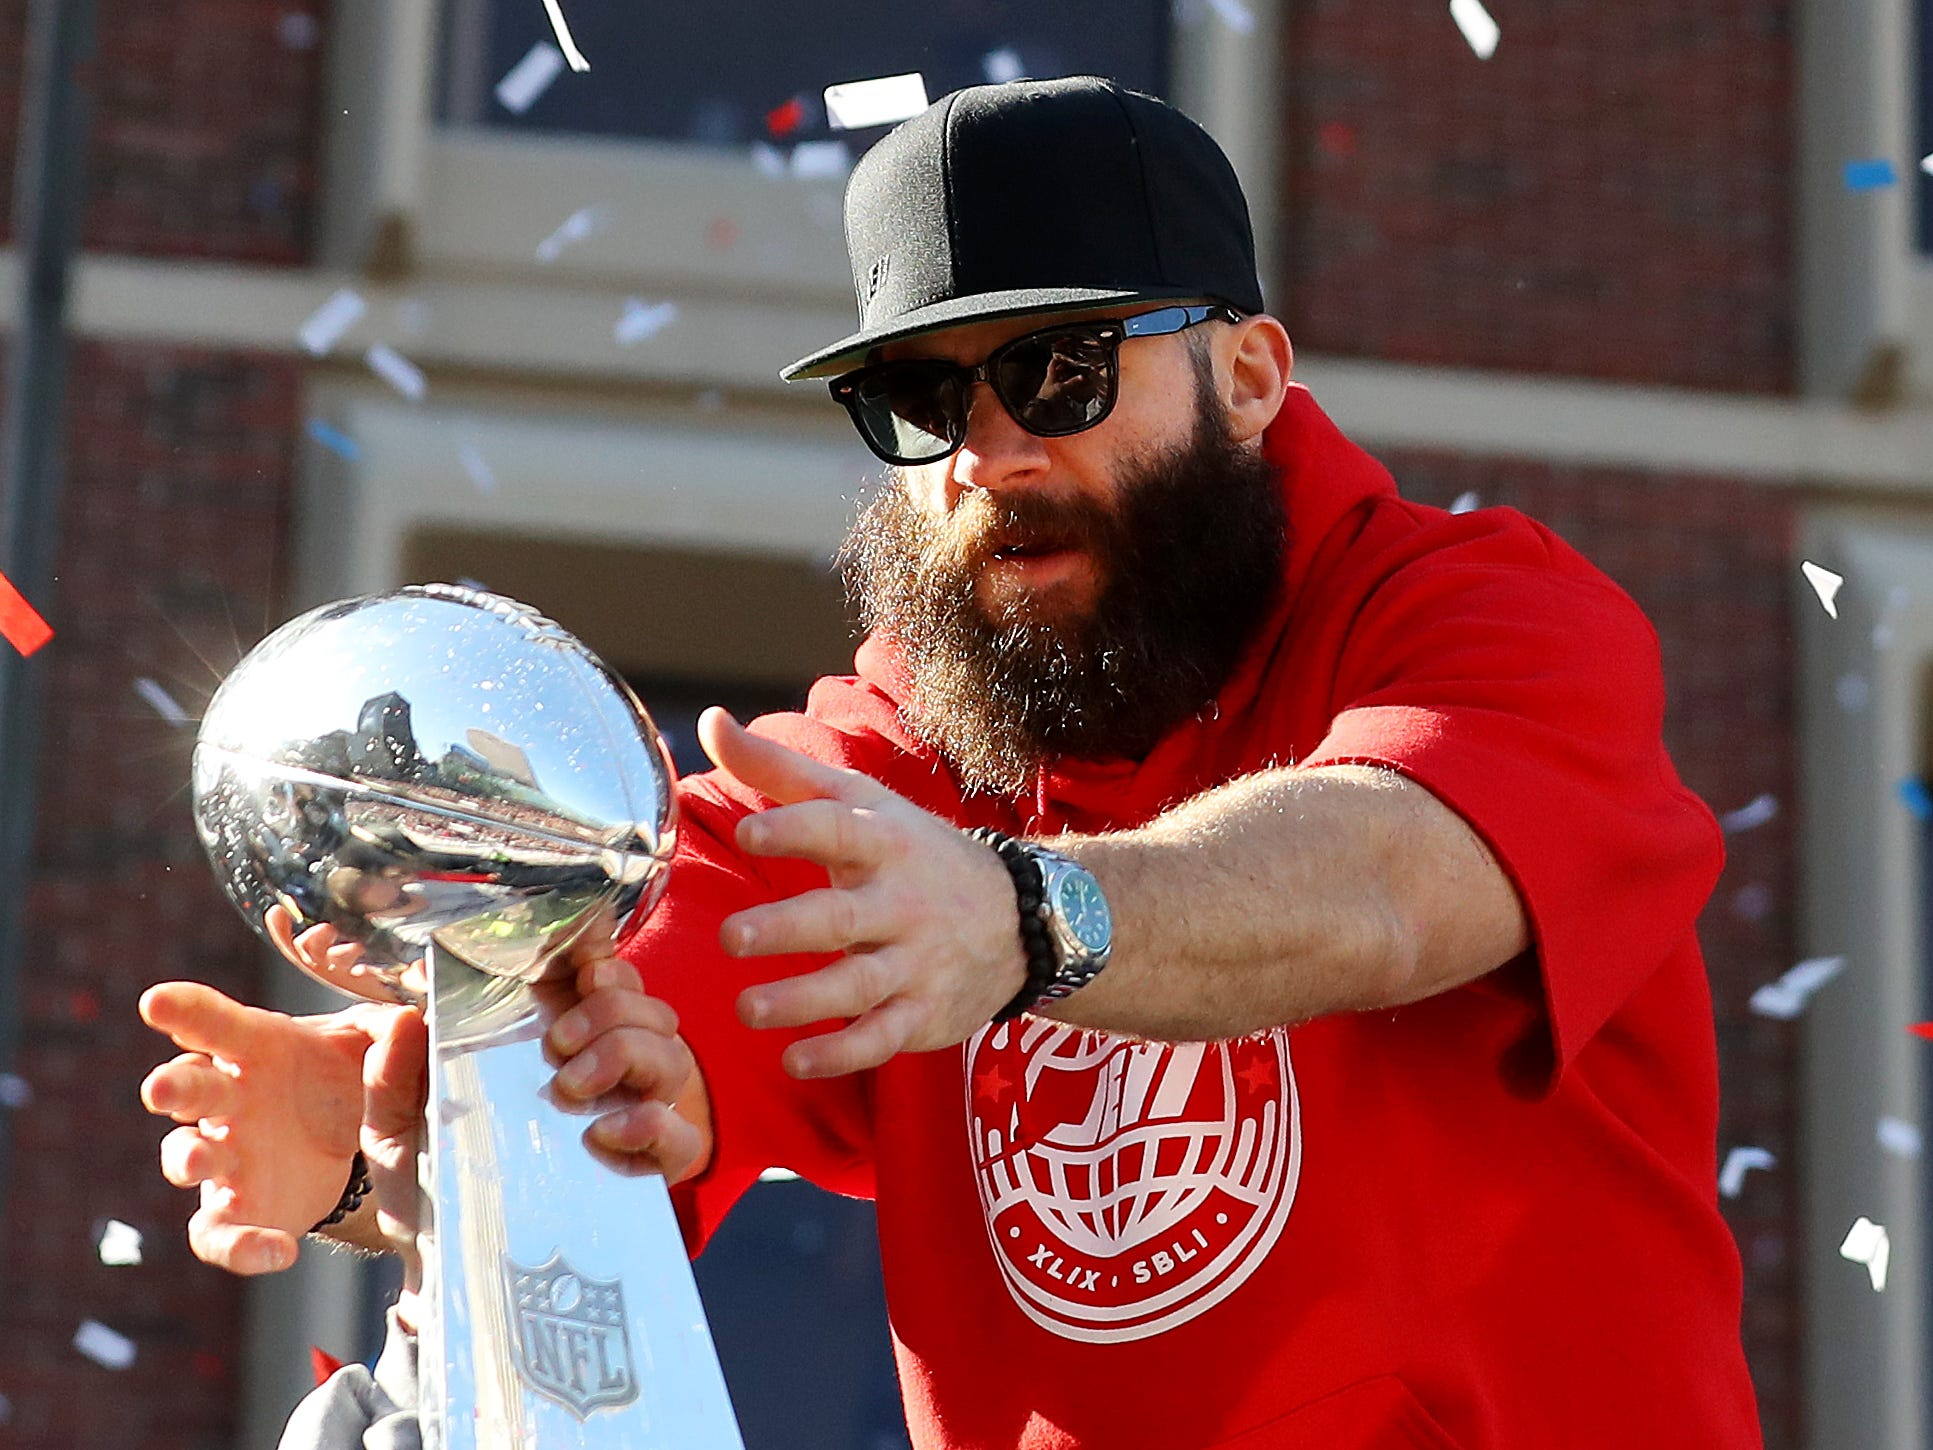 Julian Edelman of the New England Patriots celebrates with the Lombardi Trophy on Cambridge street during the New England Patriots Victory Parade on February 05, 2019 in Boston, Massachusetts.